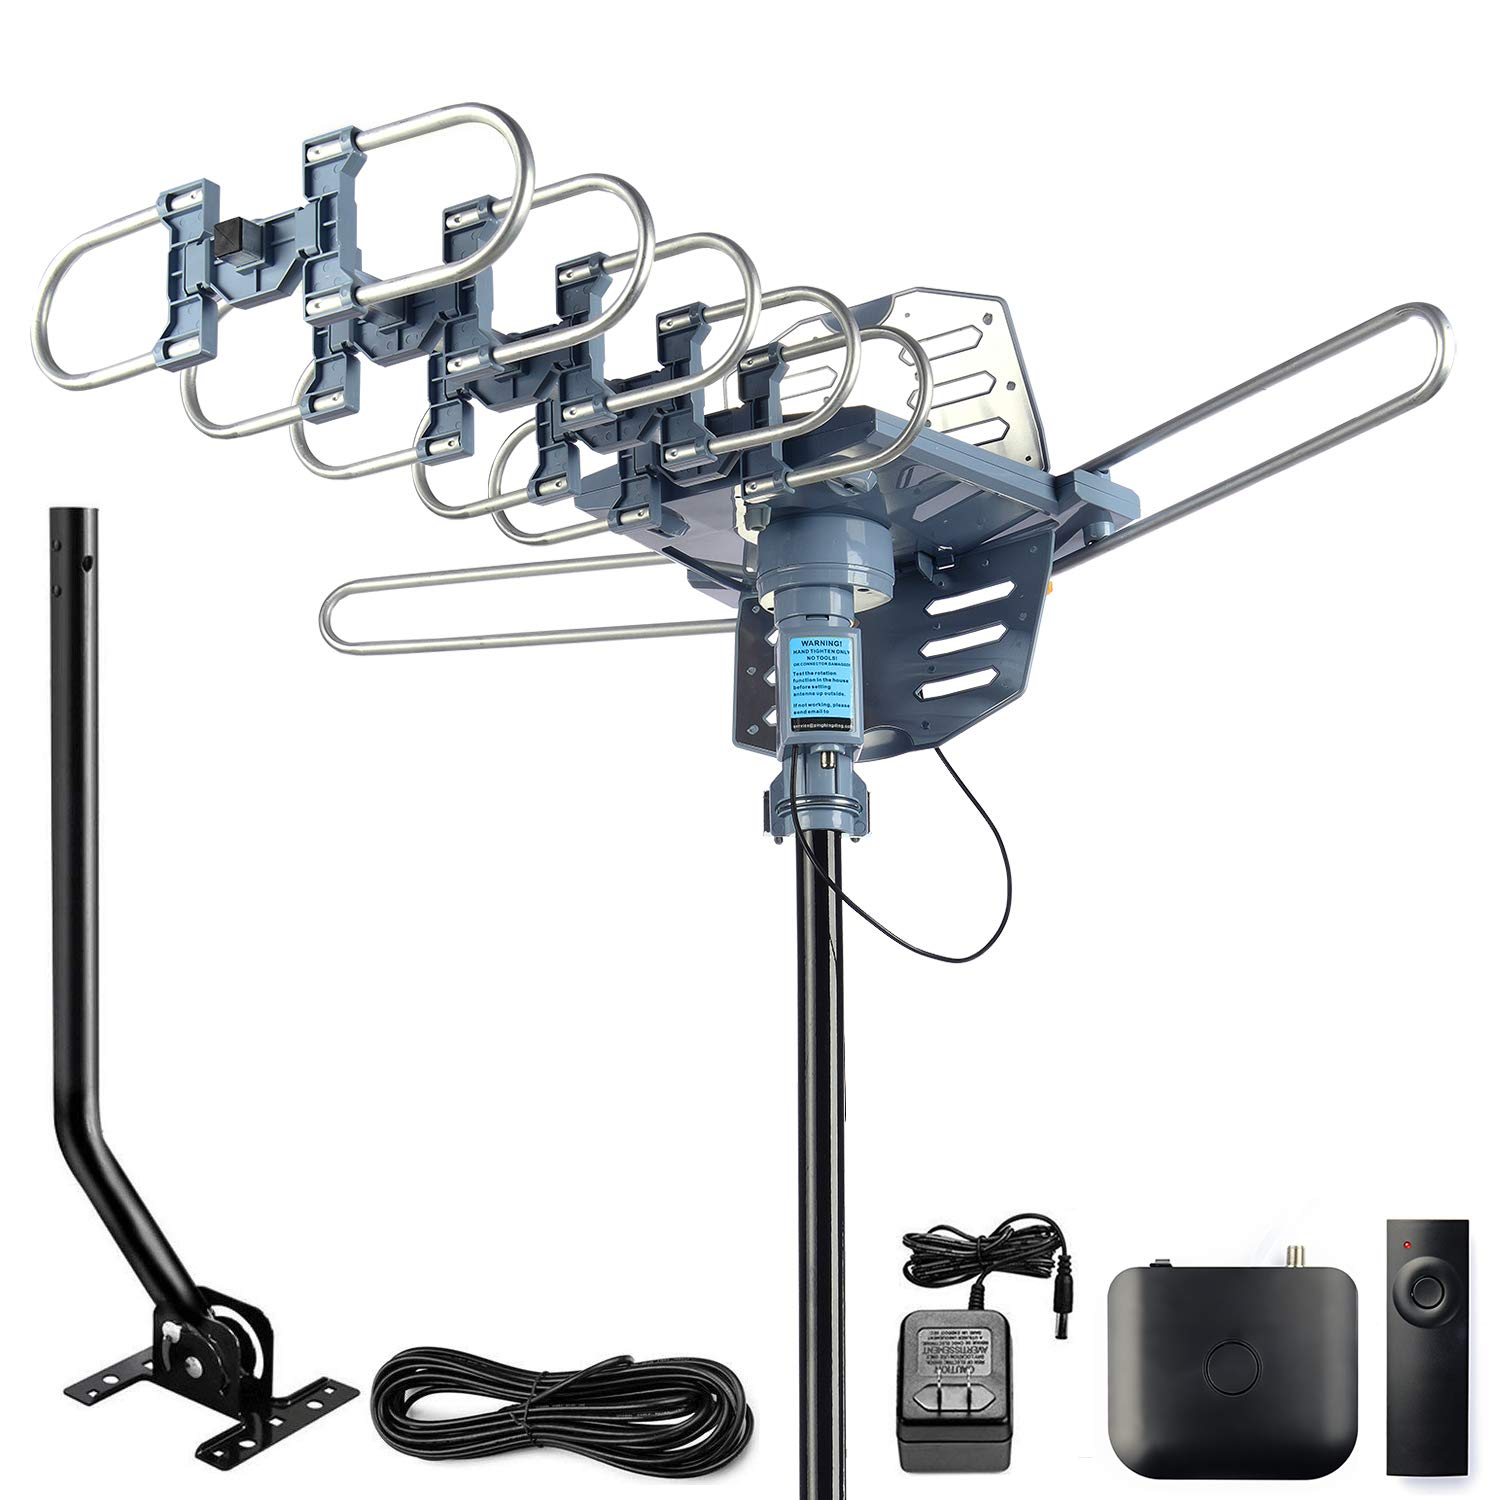 CeKay Digital Outdoor Amplified HD TV Antenna Motorized 360 Degree Rotation 150 Miles with 40FT RG6 Coax Cable and Mounting Pole Snap-On Installation - UHF/VHF/1080P/4K by CeKay